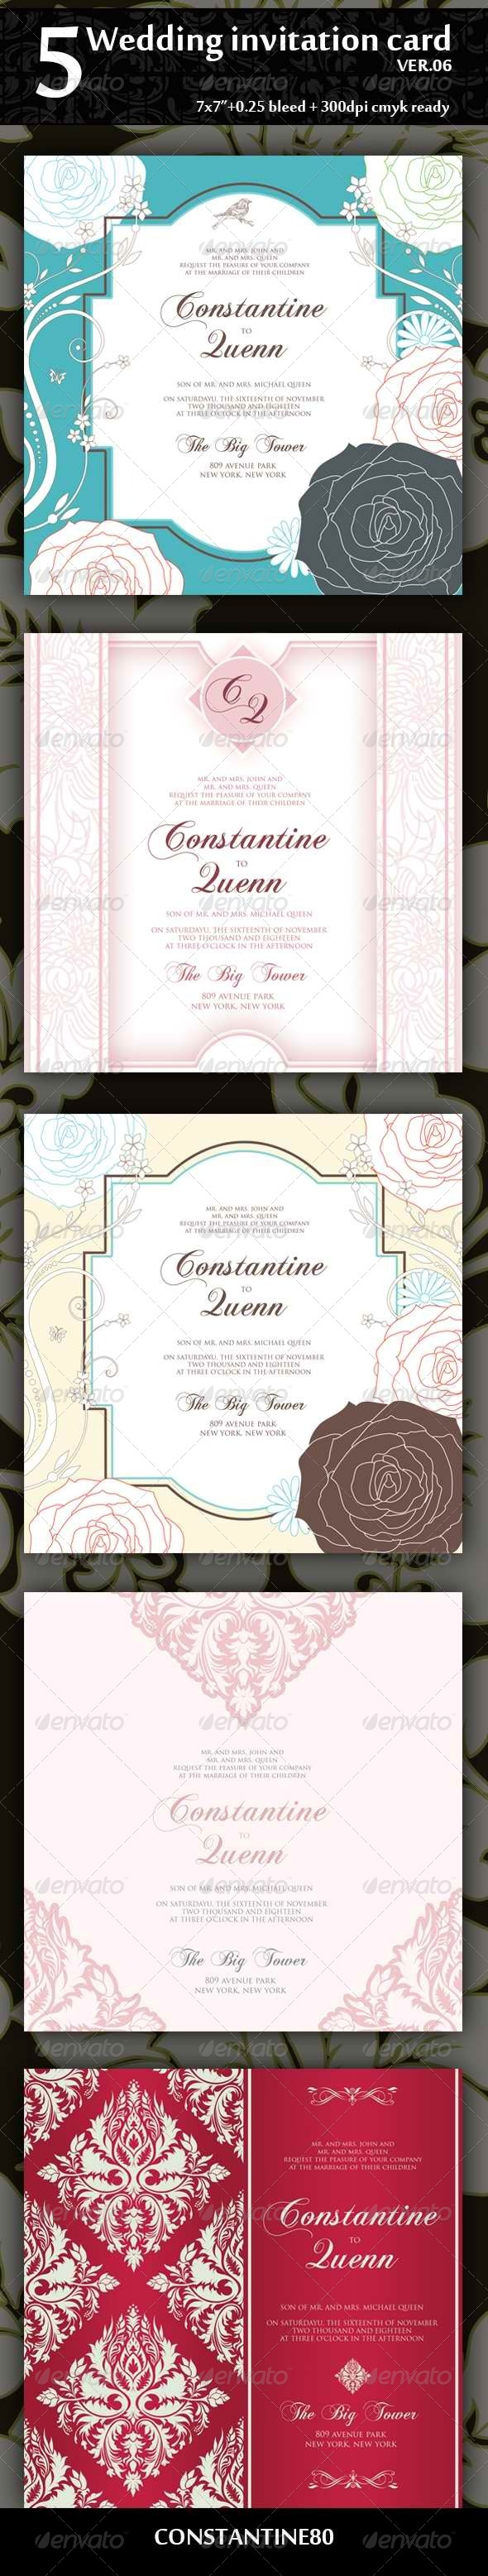 5 Wedding Invitation Card Ver06 - Weddings Cards & Invites